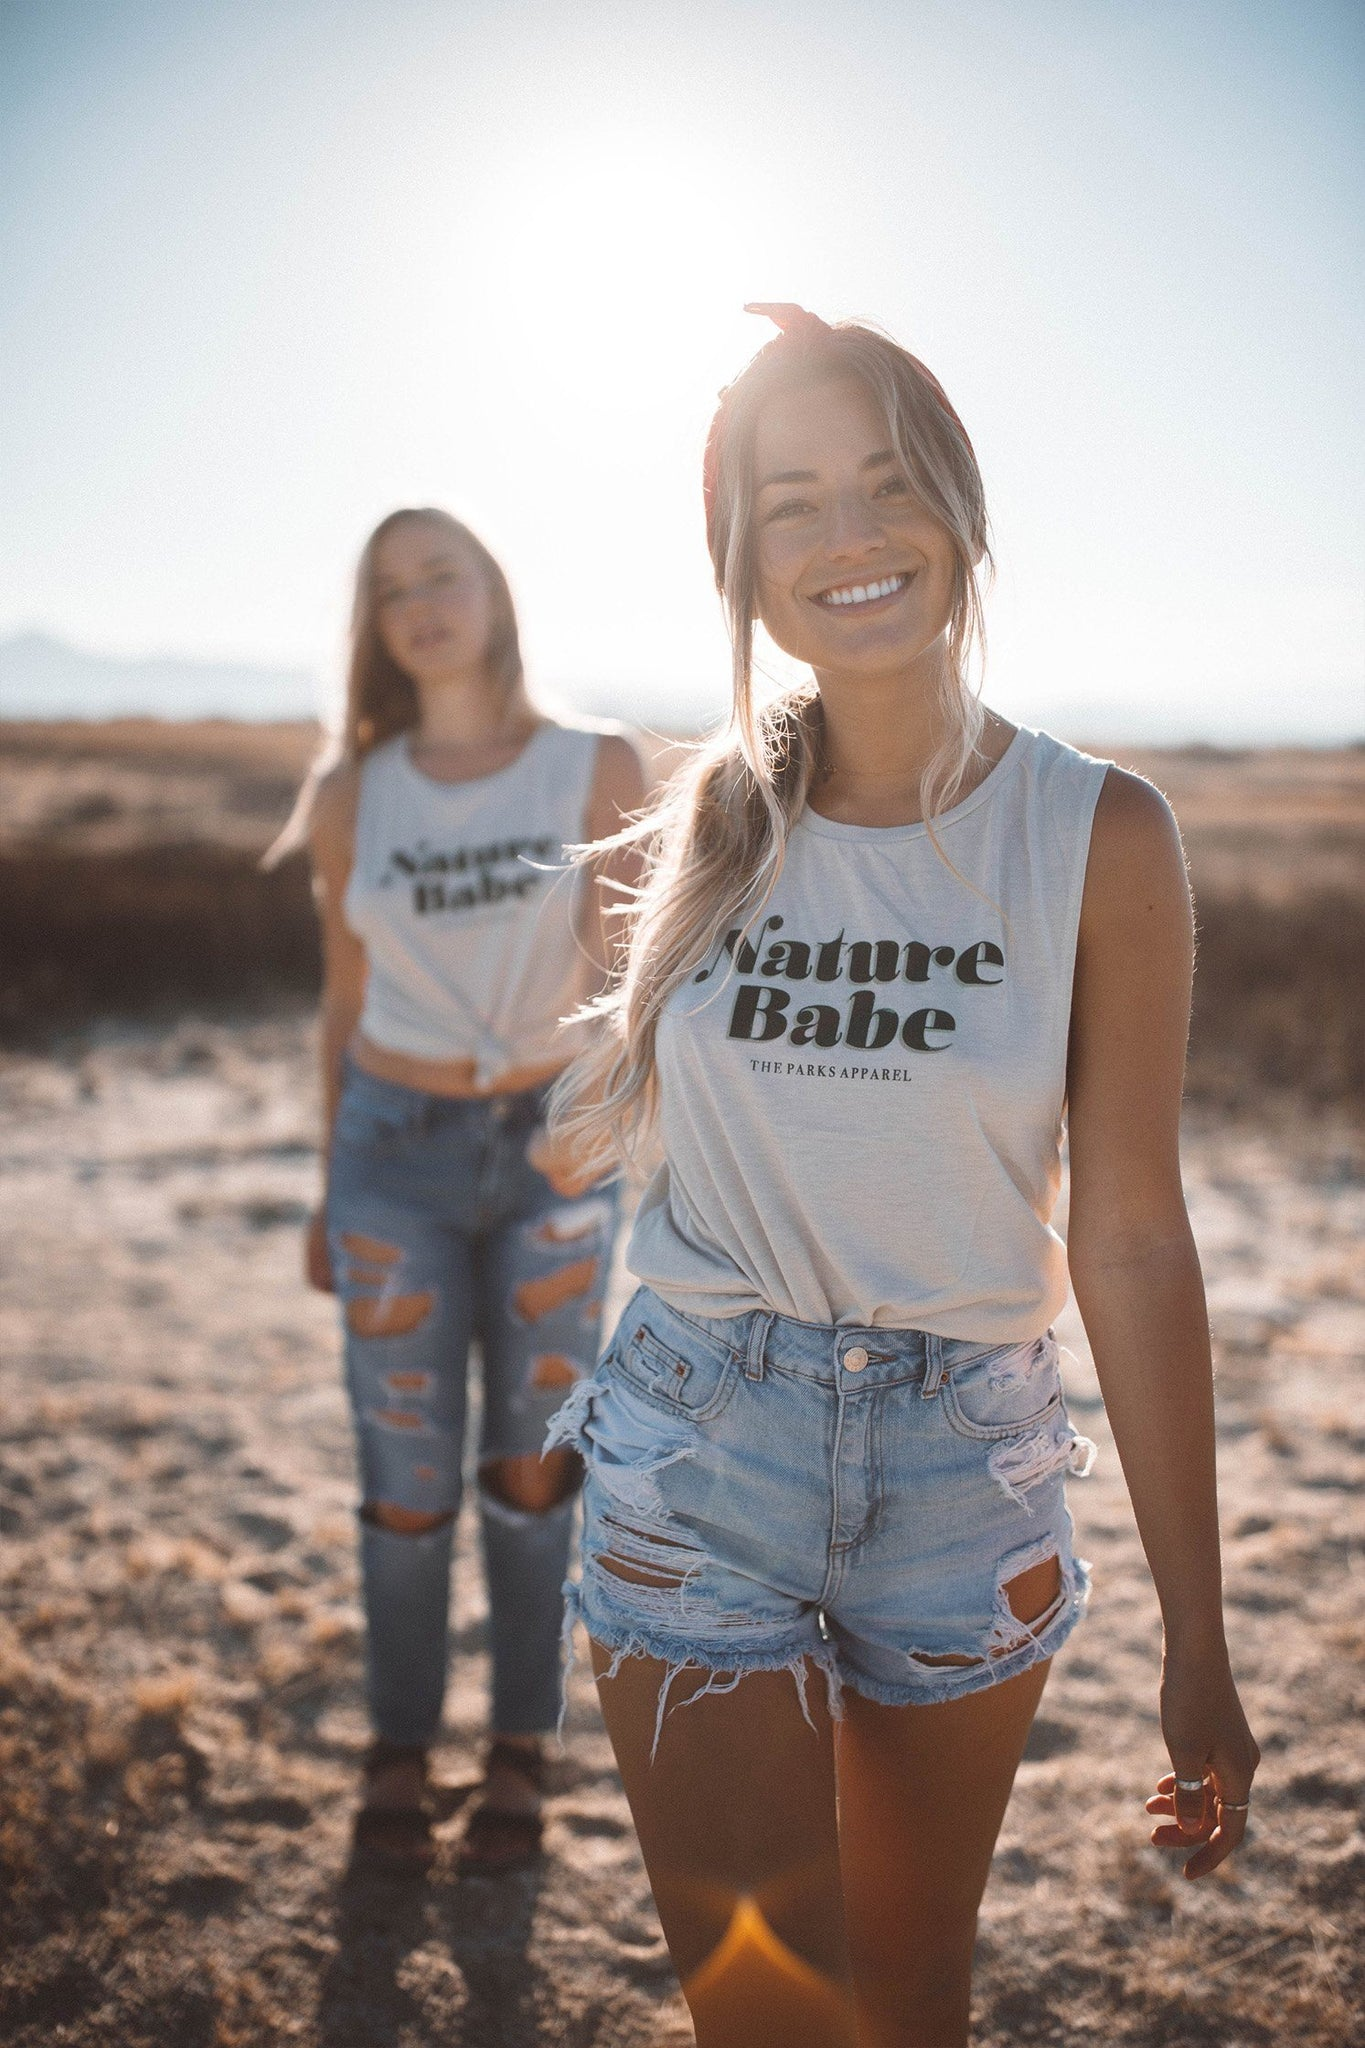 The Parks Vintage Nature Babe Tank - The Parks Apparel